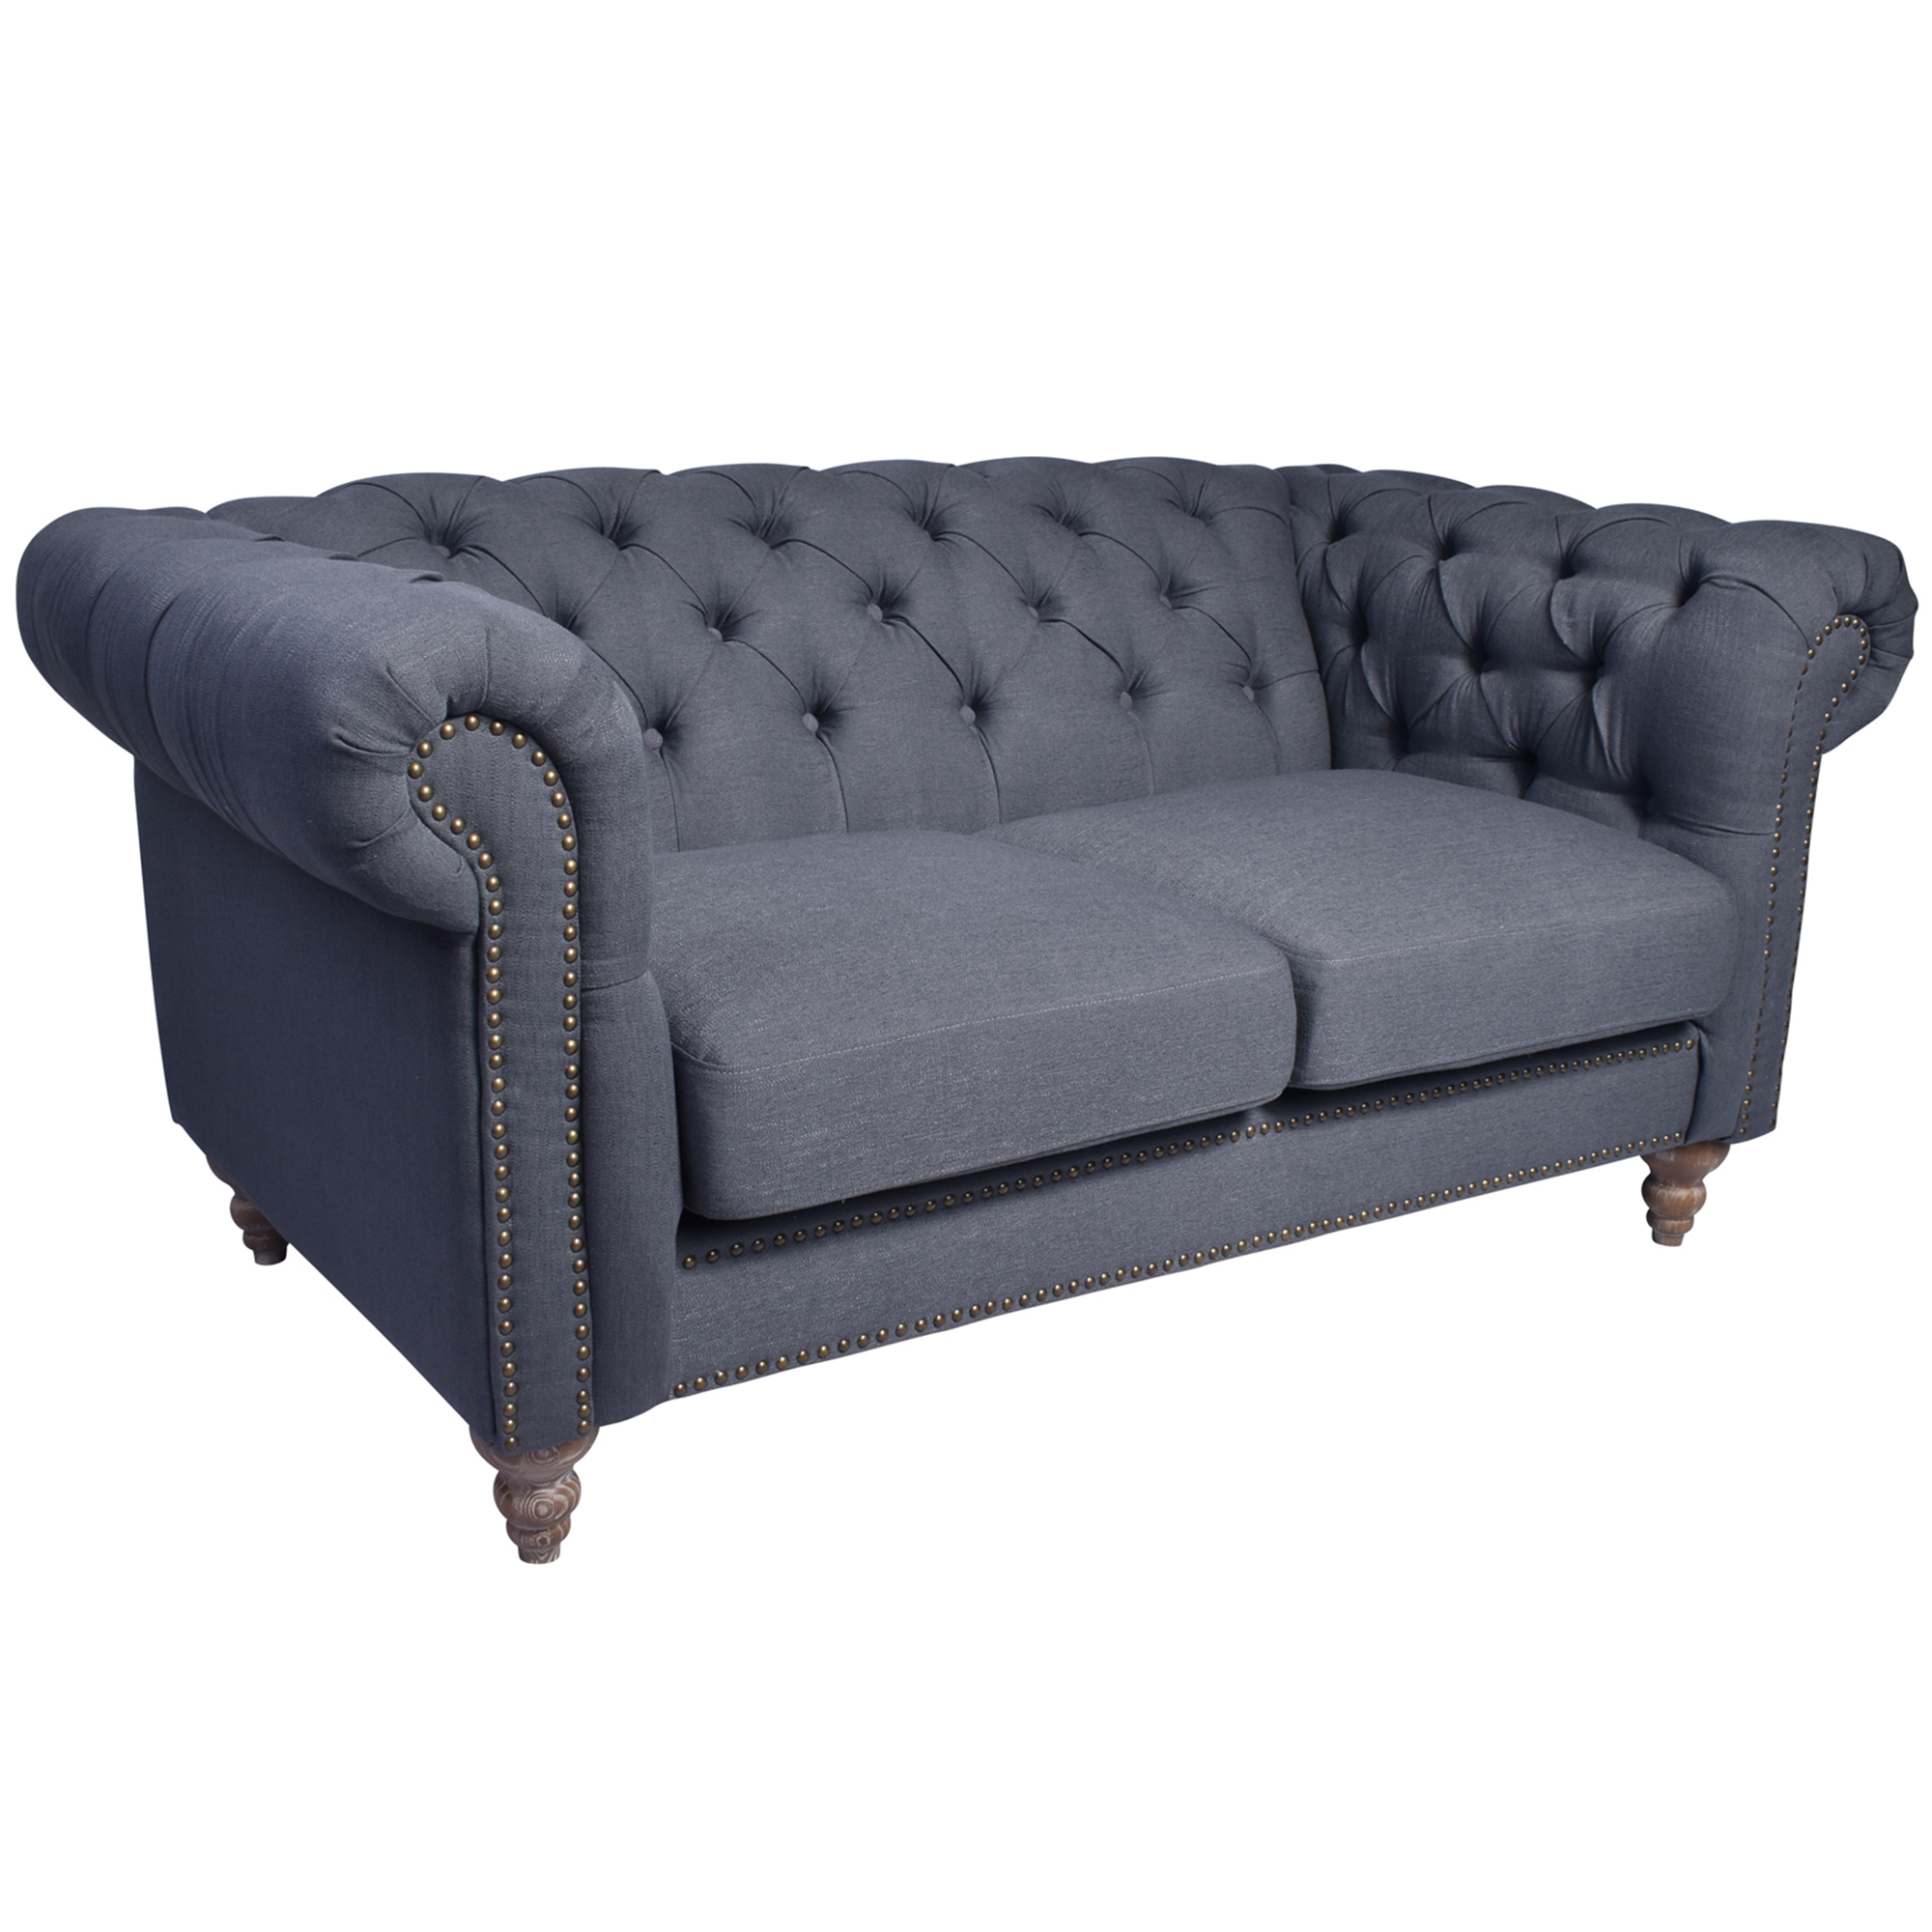 Picture of: Victoria 2 Seater Grey Linen Chesterfield Sofa Temple Webster